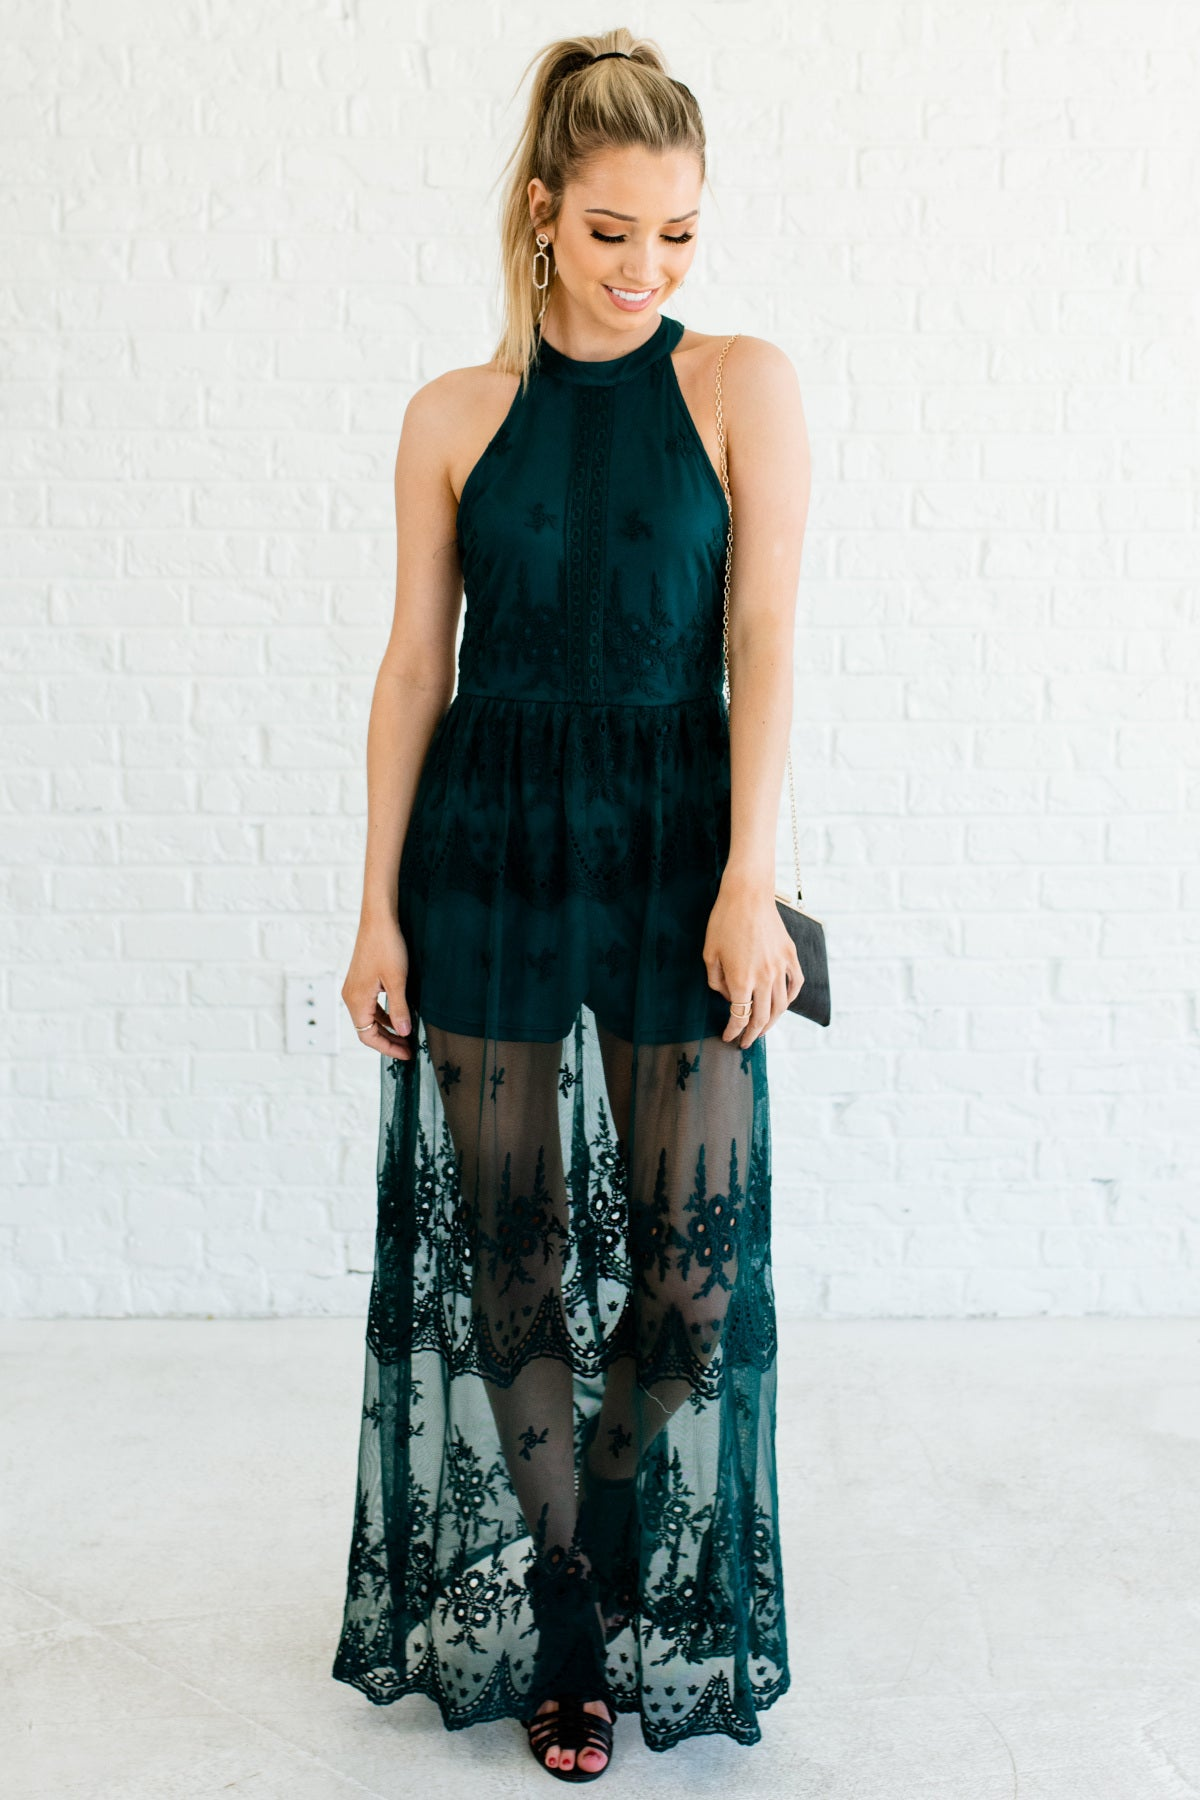 65dcc1bce0d6 Steal the Show Green Lace Maxi Romper Dress